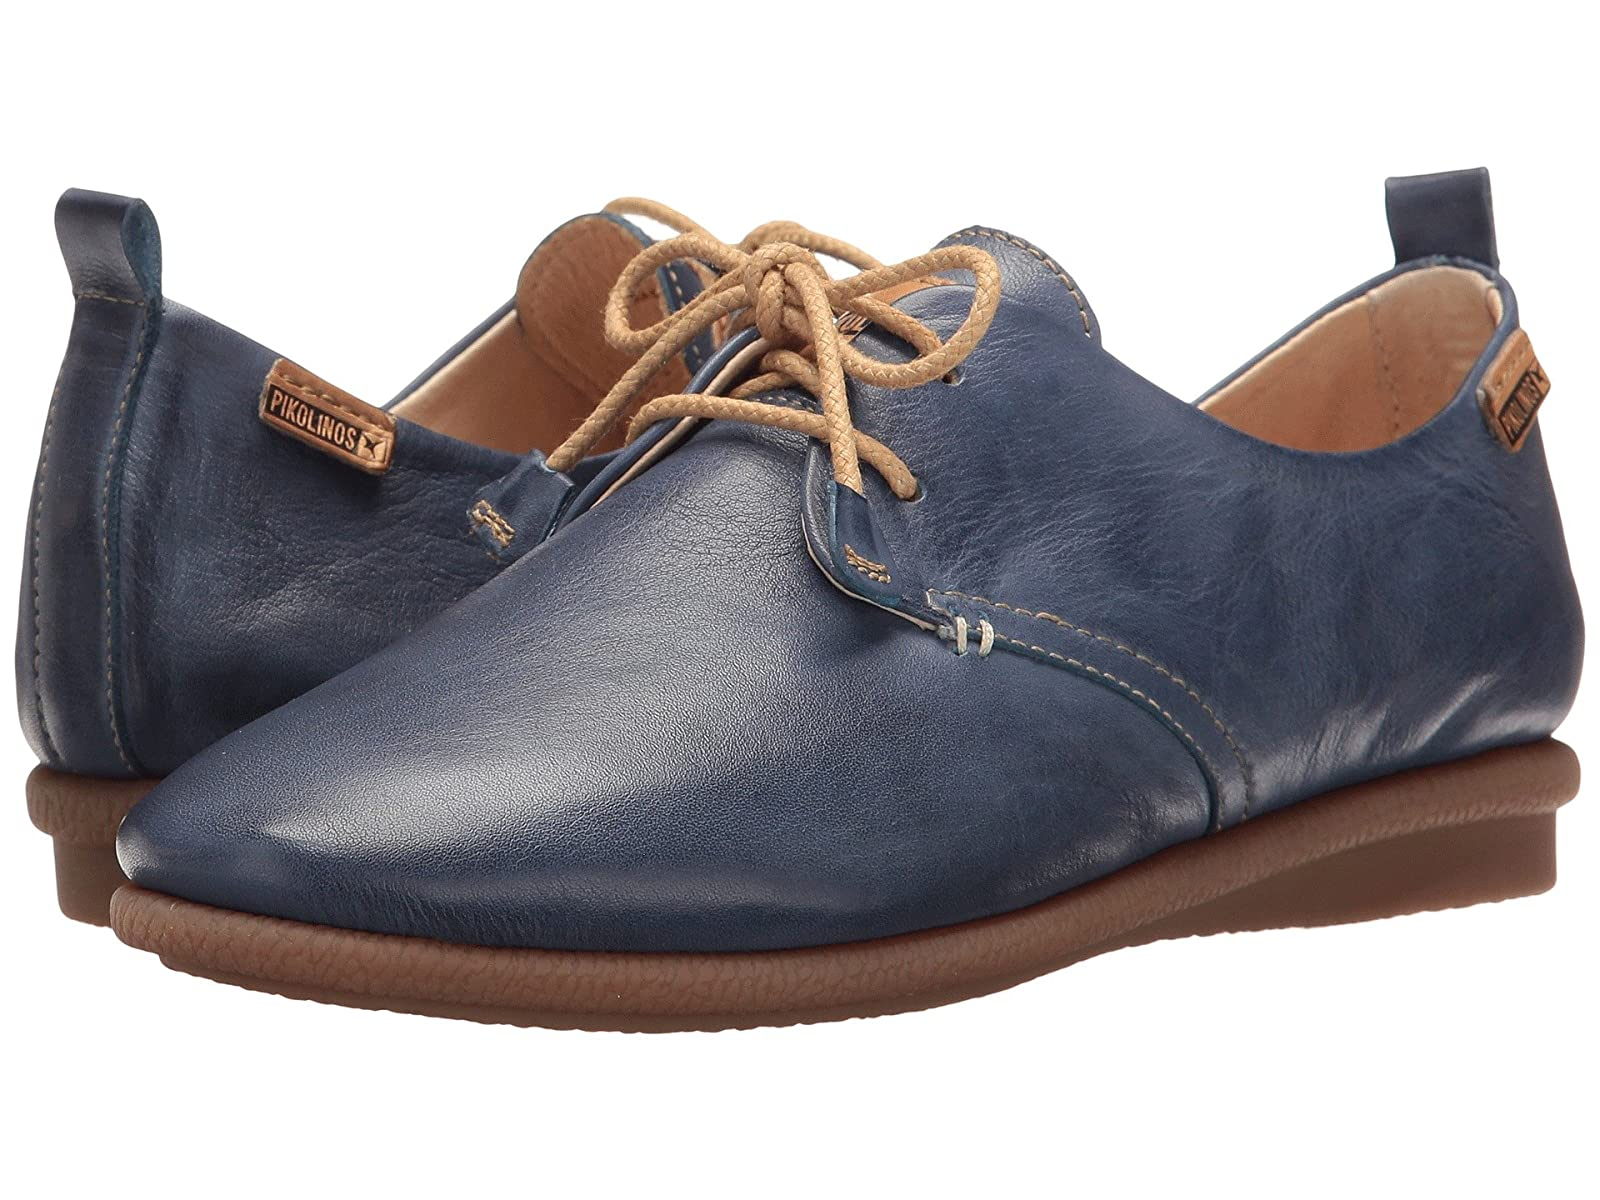 Pikolinos Calabria W9K-4623Atmospheric grades have affordable shoes